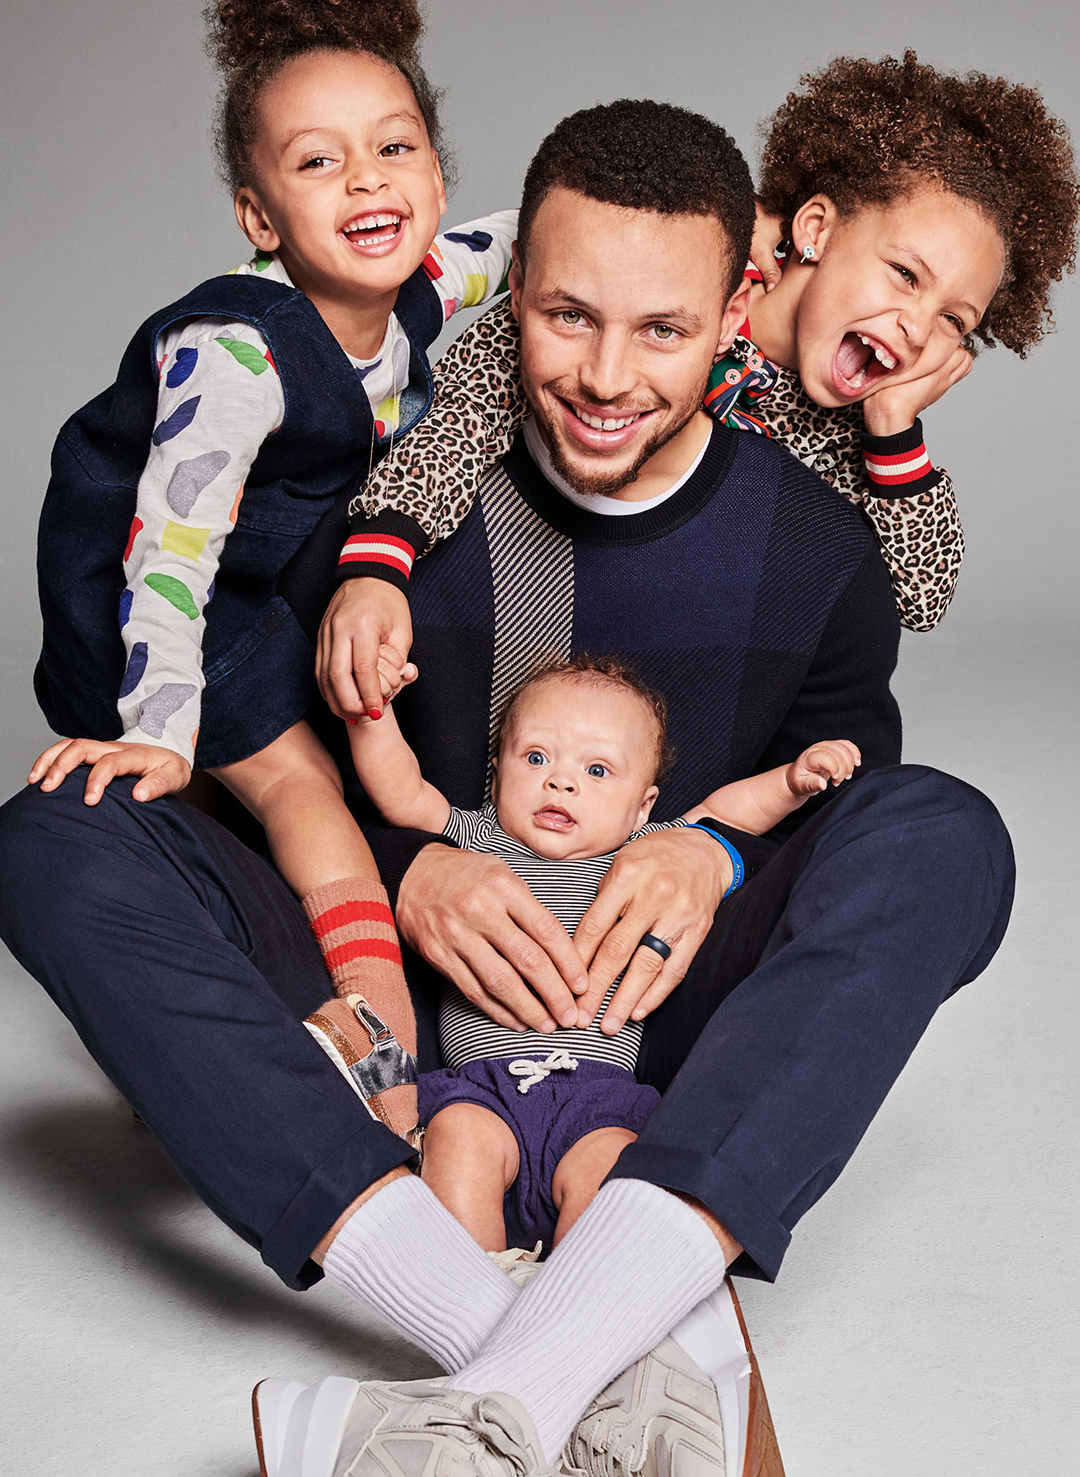 Stephen Curry with his three kids